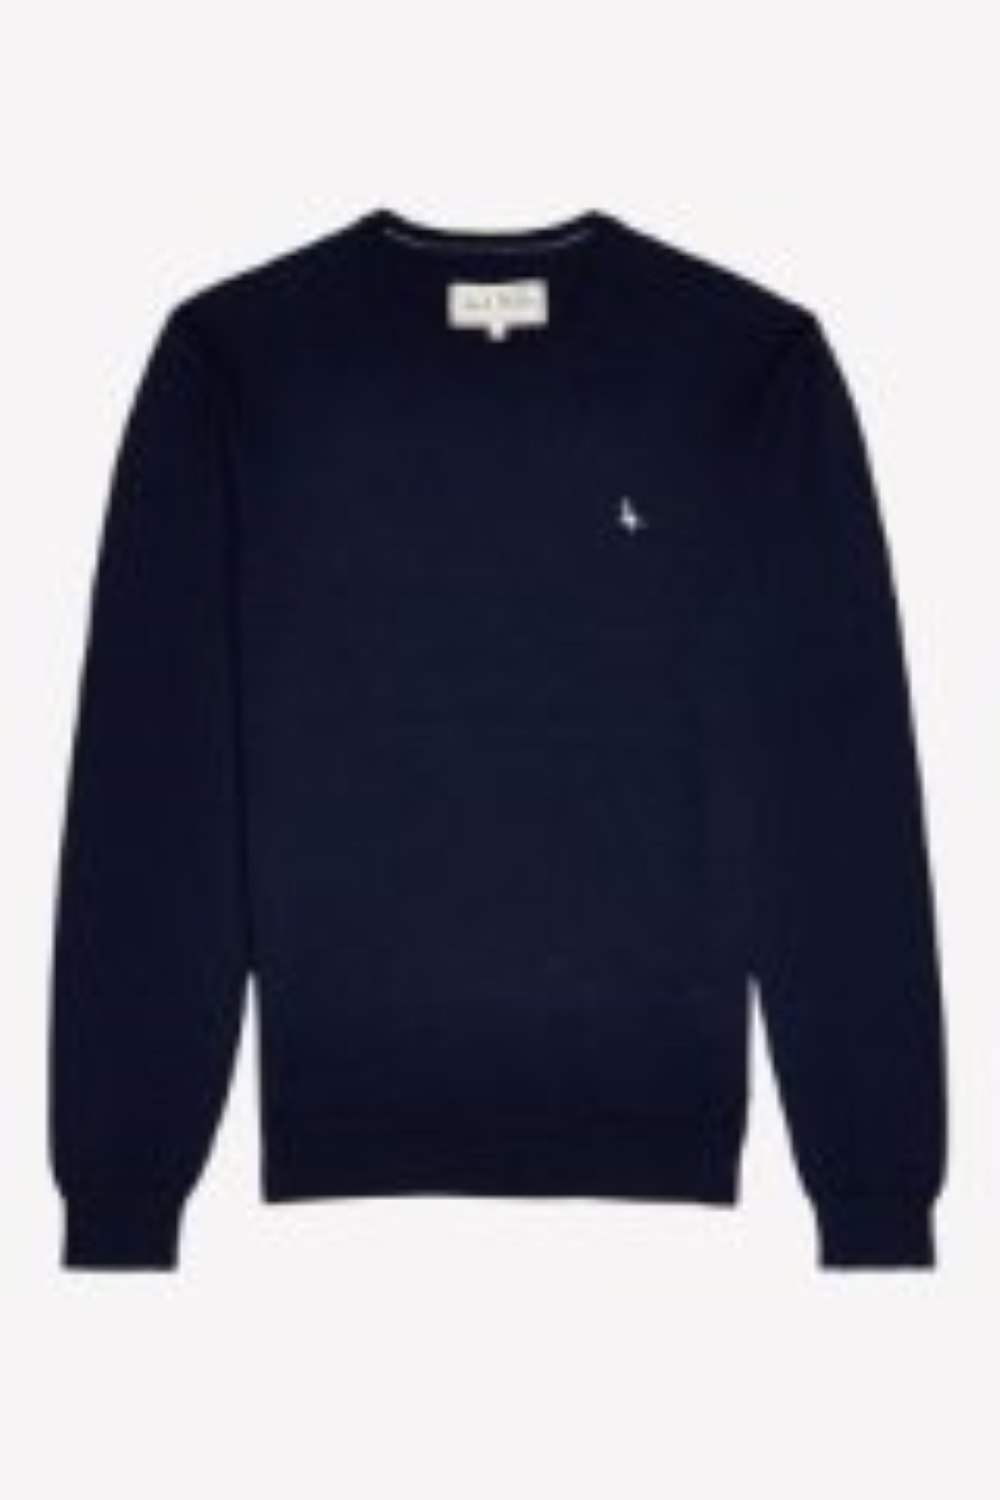 Jack Wills Navy Marl SEABOURNE CLASSIC CREW